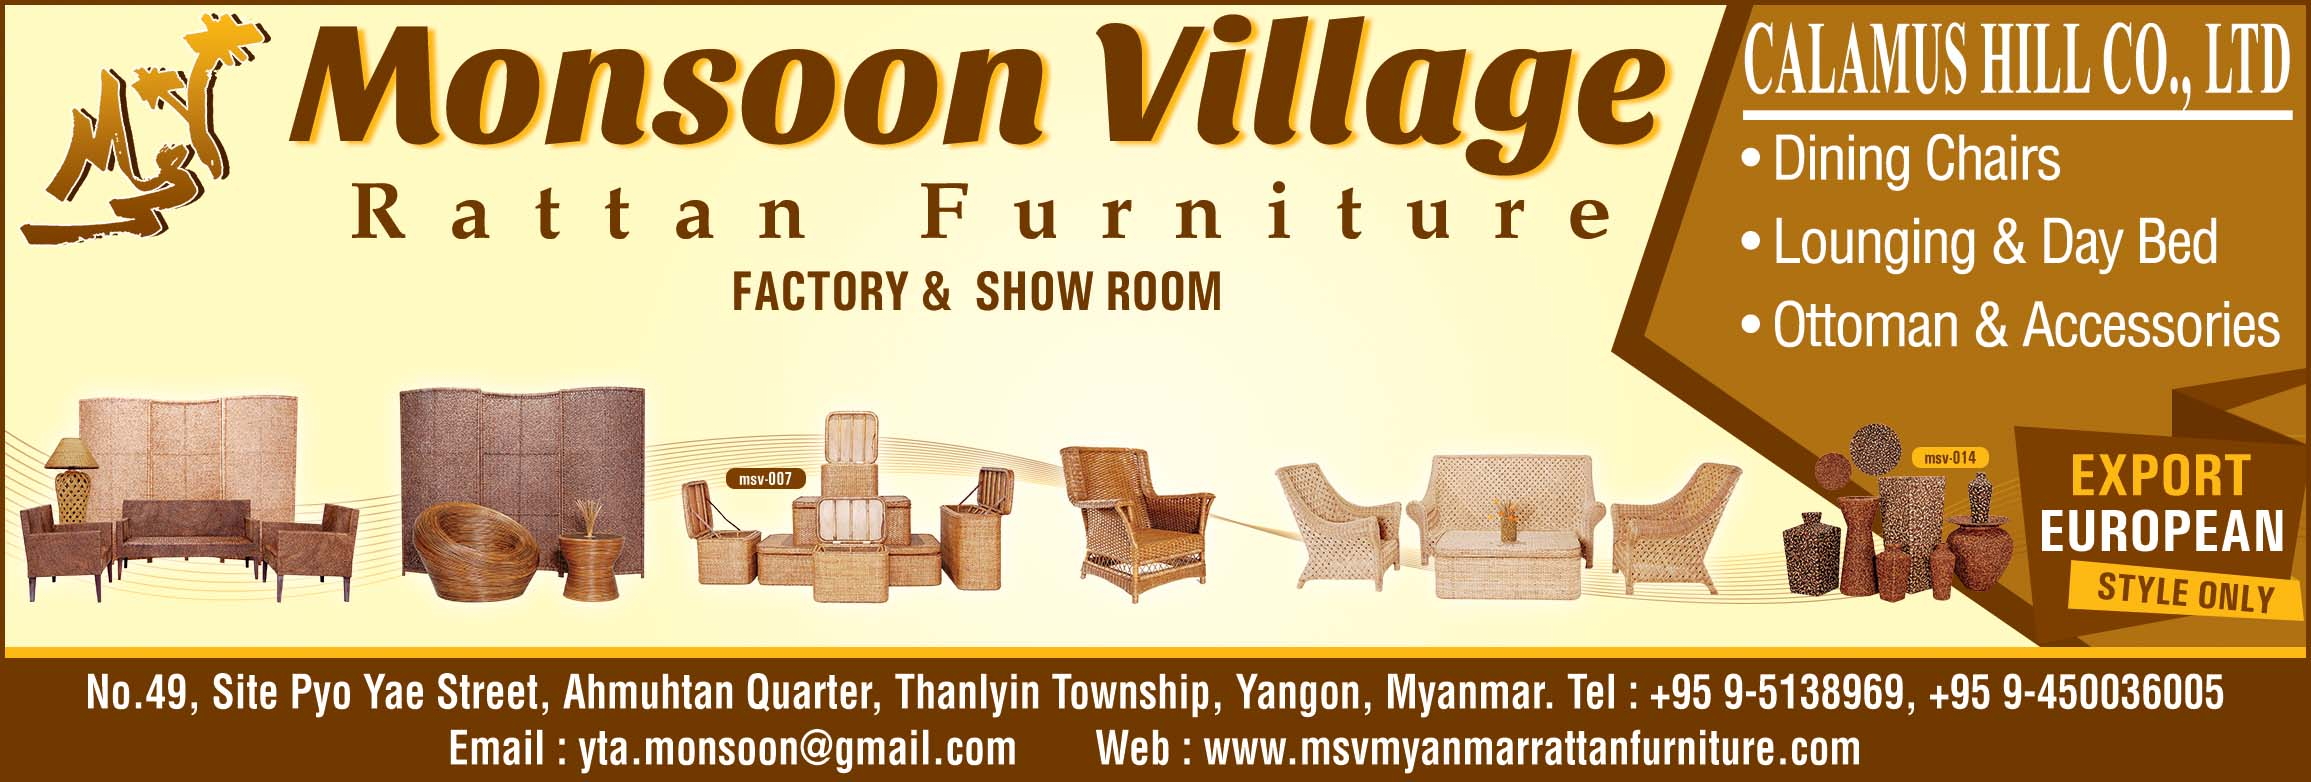 Monsoon Village Rattan Furniture (Calamus Hill Co., Ltd.)